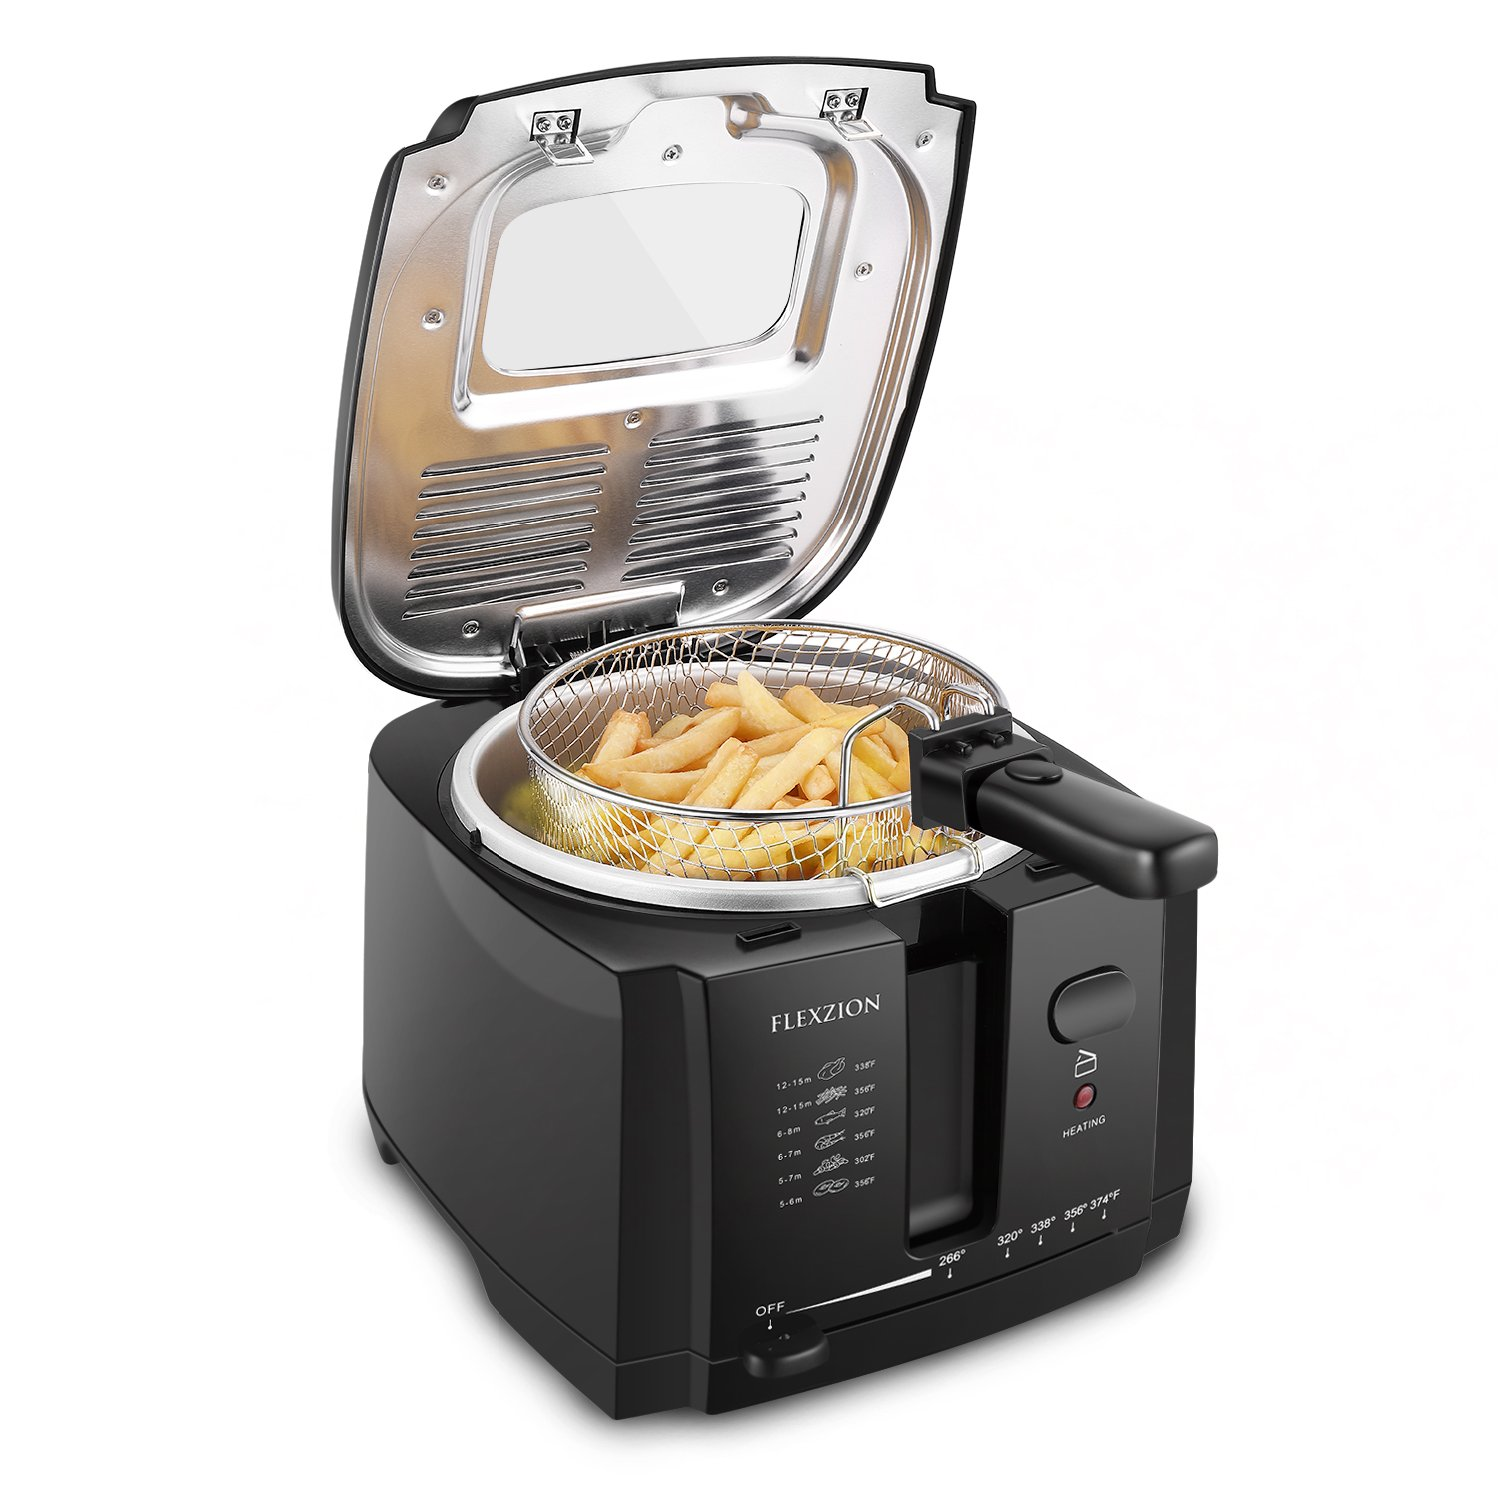 320473d2fd Flexzion Deep Fryer with Basket - Home Electric Deep Fat Fryer Cooker w 2  Liter Food Oil Capacity Adjustable Temperature Thermostat Grease Filter ...